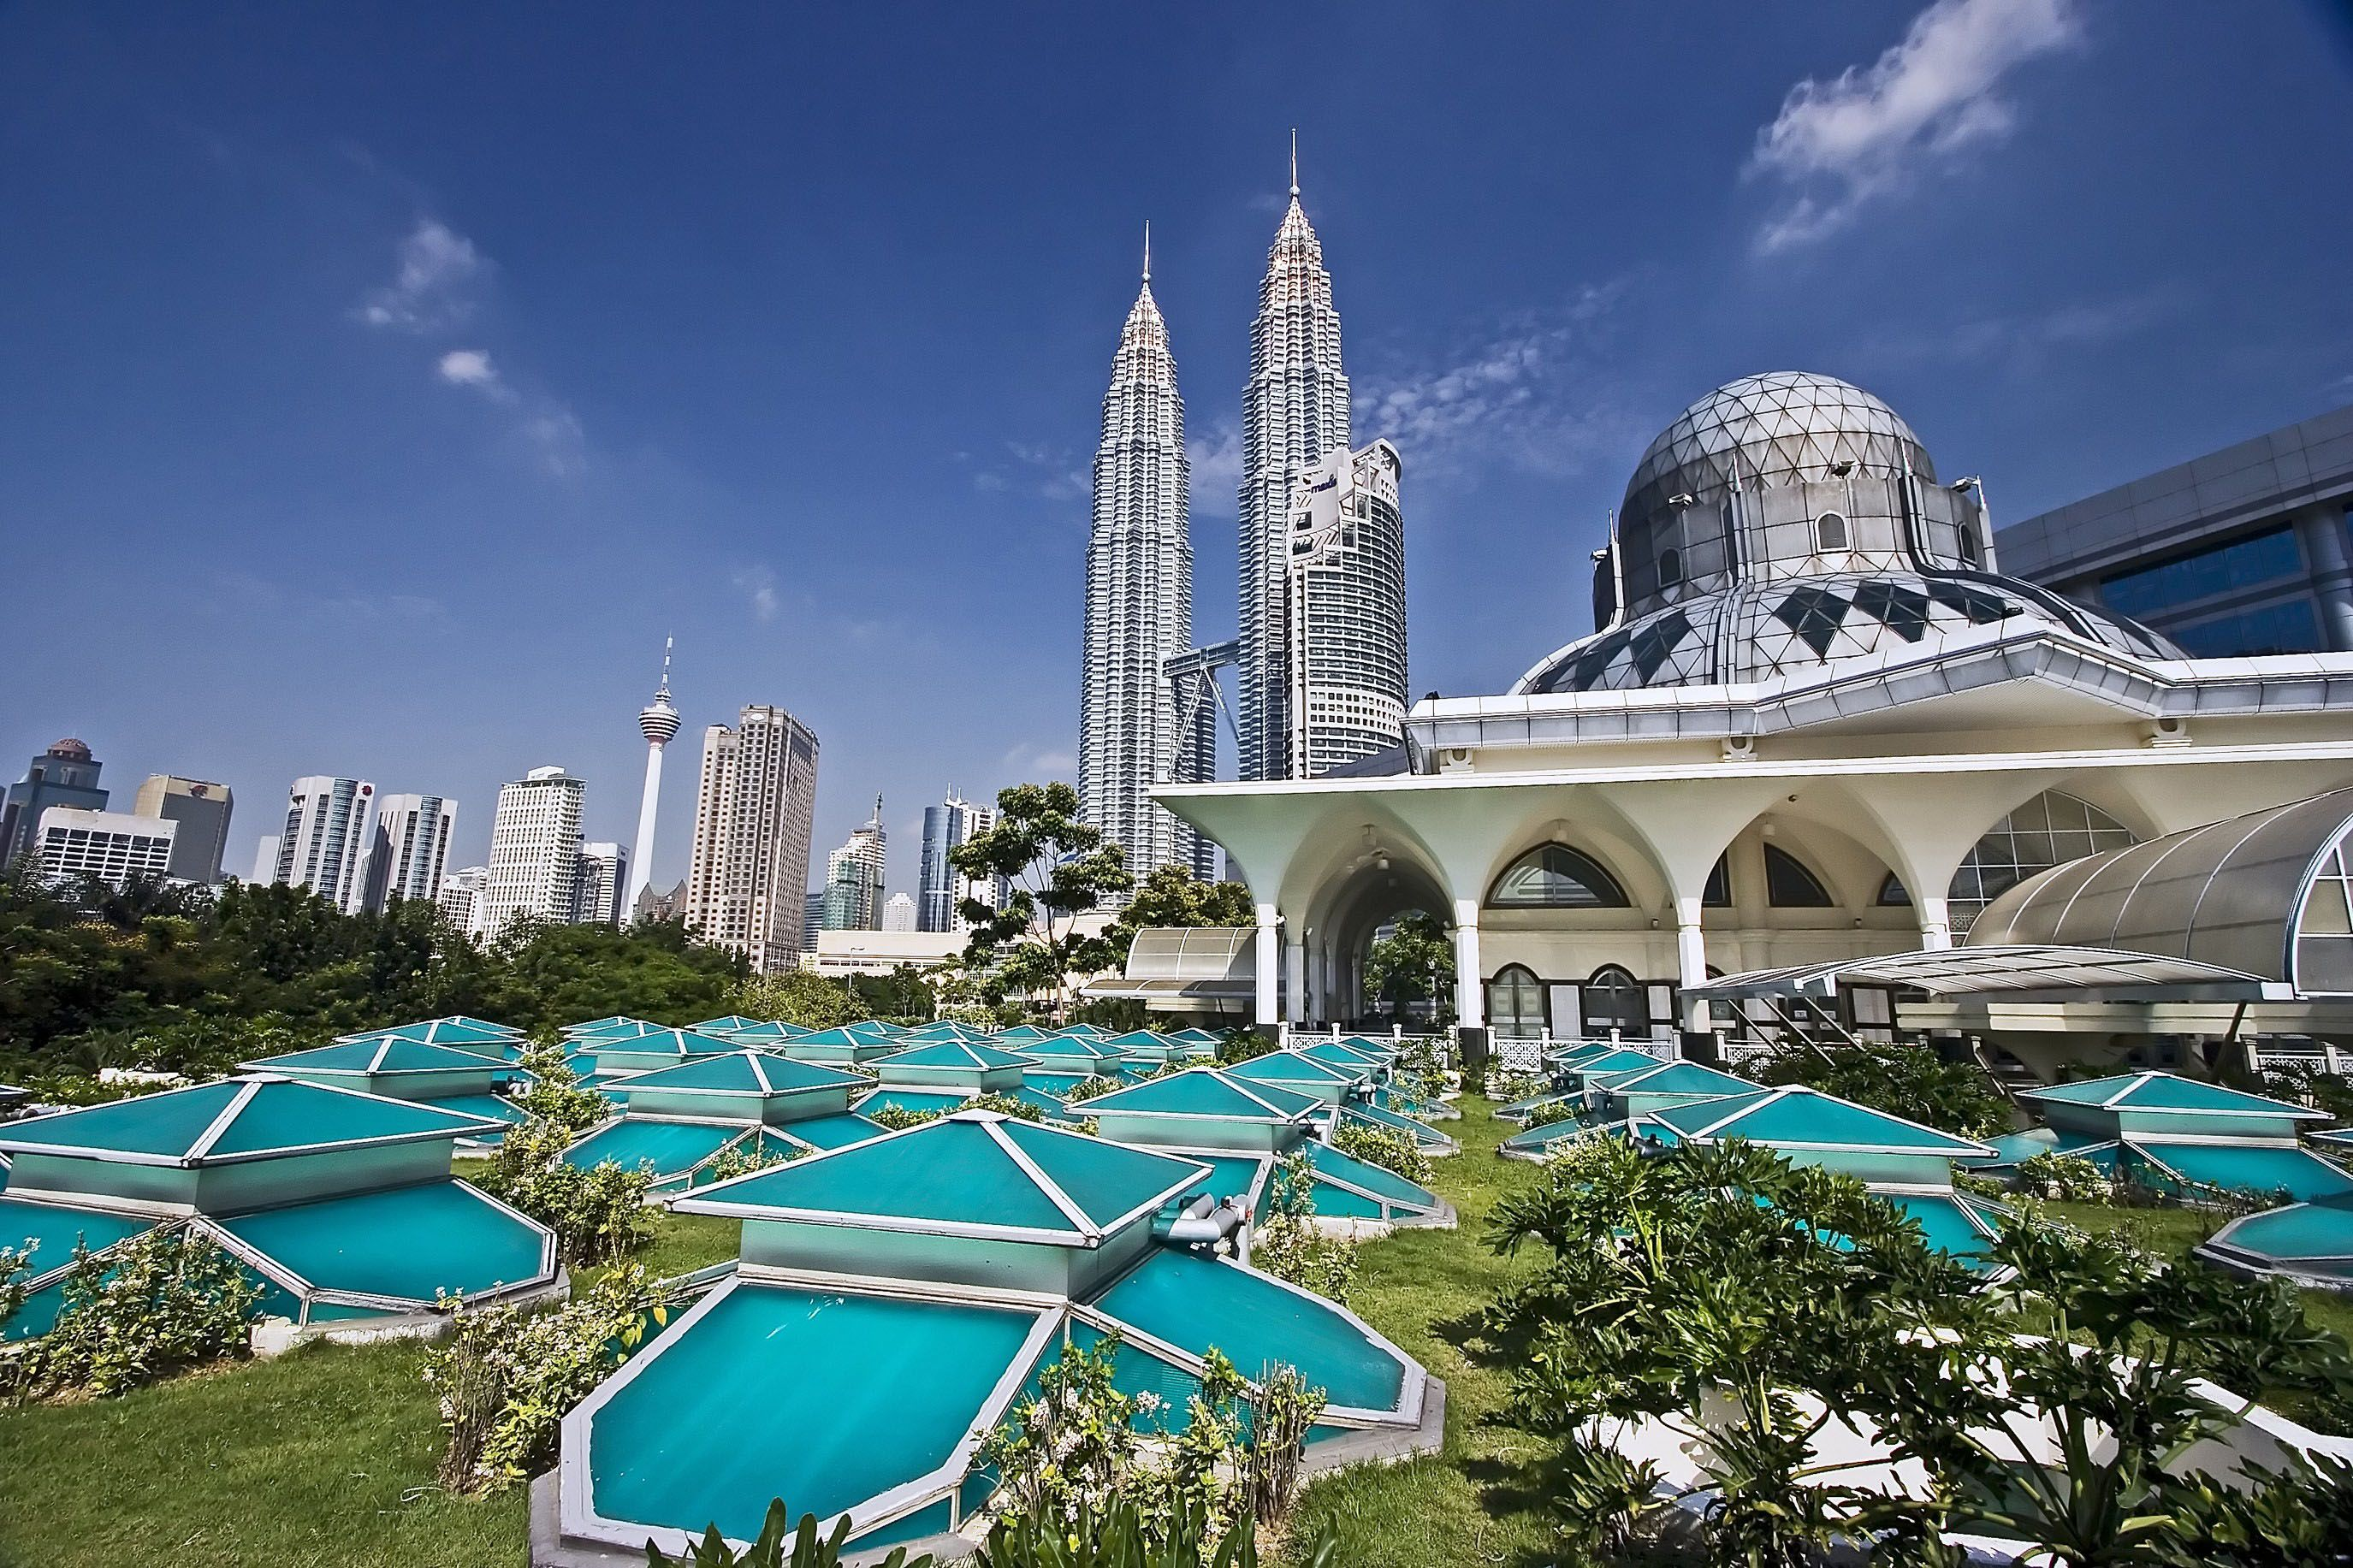 The 10 Best Places to Visit in Malaysia